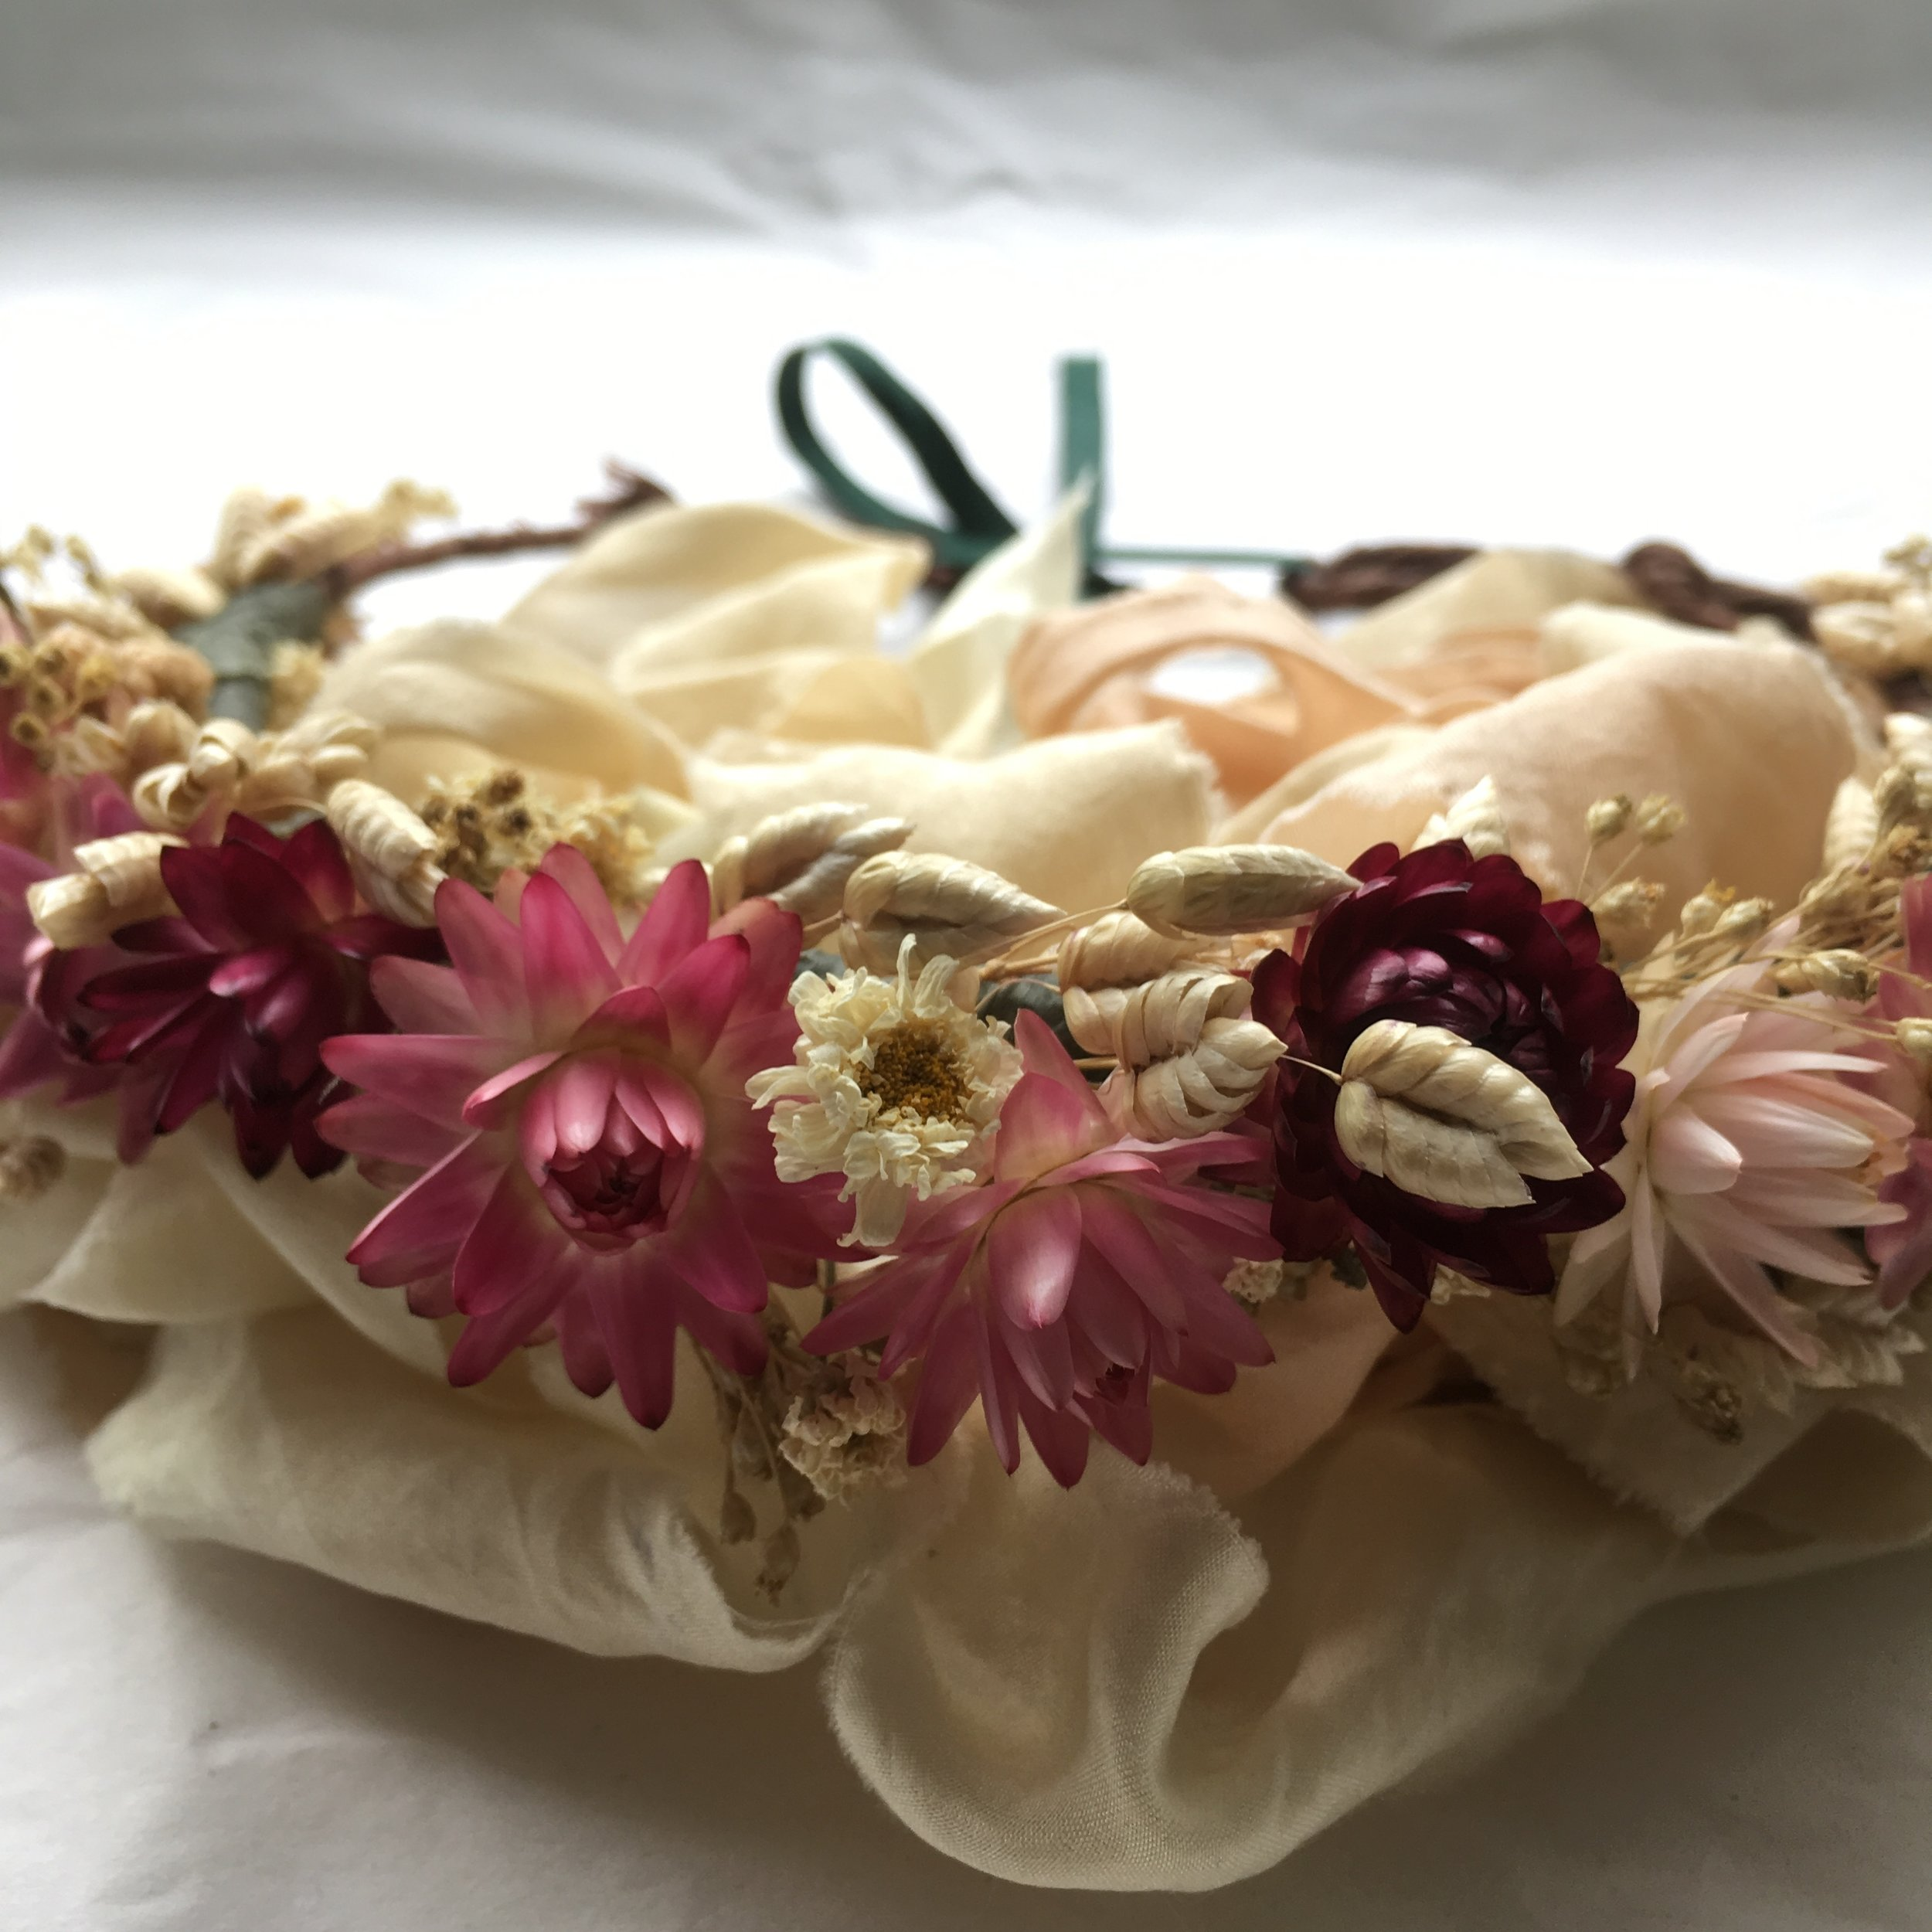 - Bespoke flower crown crafted using dried flowers, available upon request